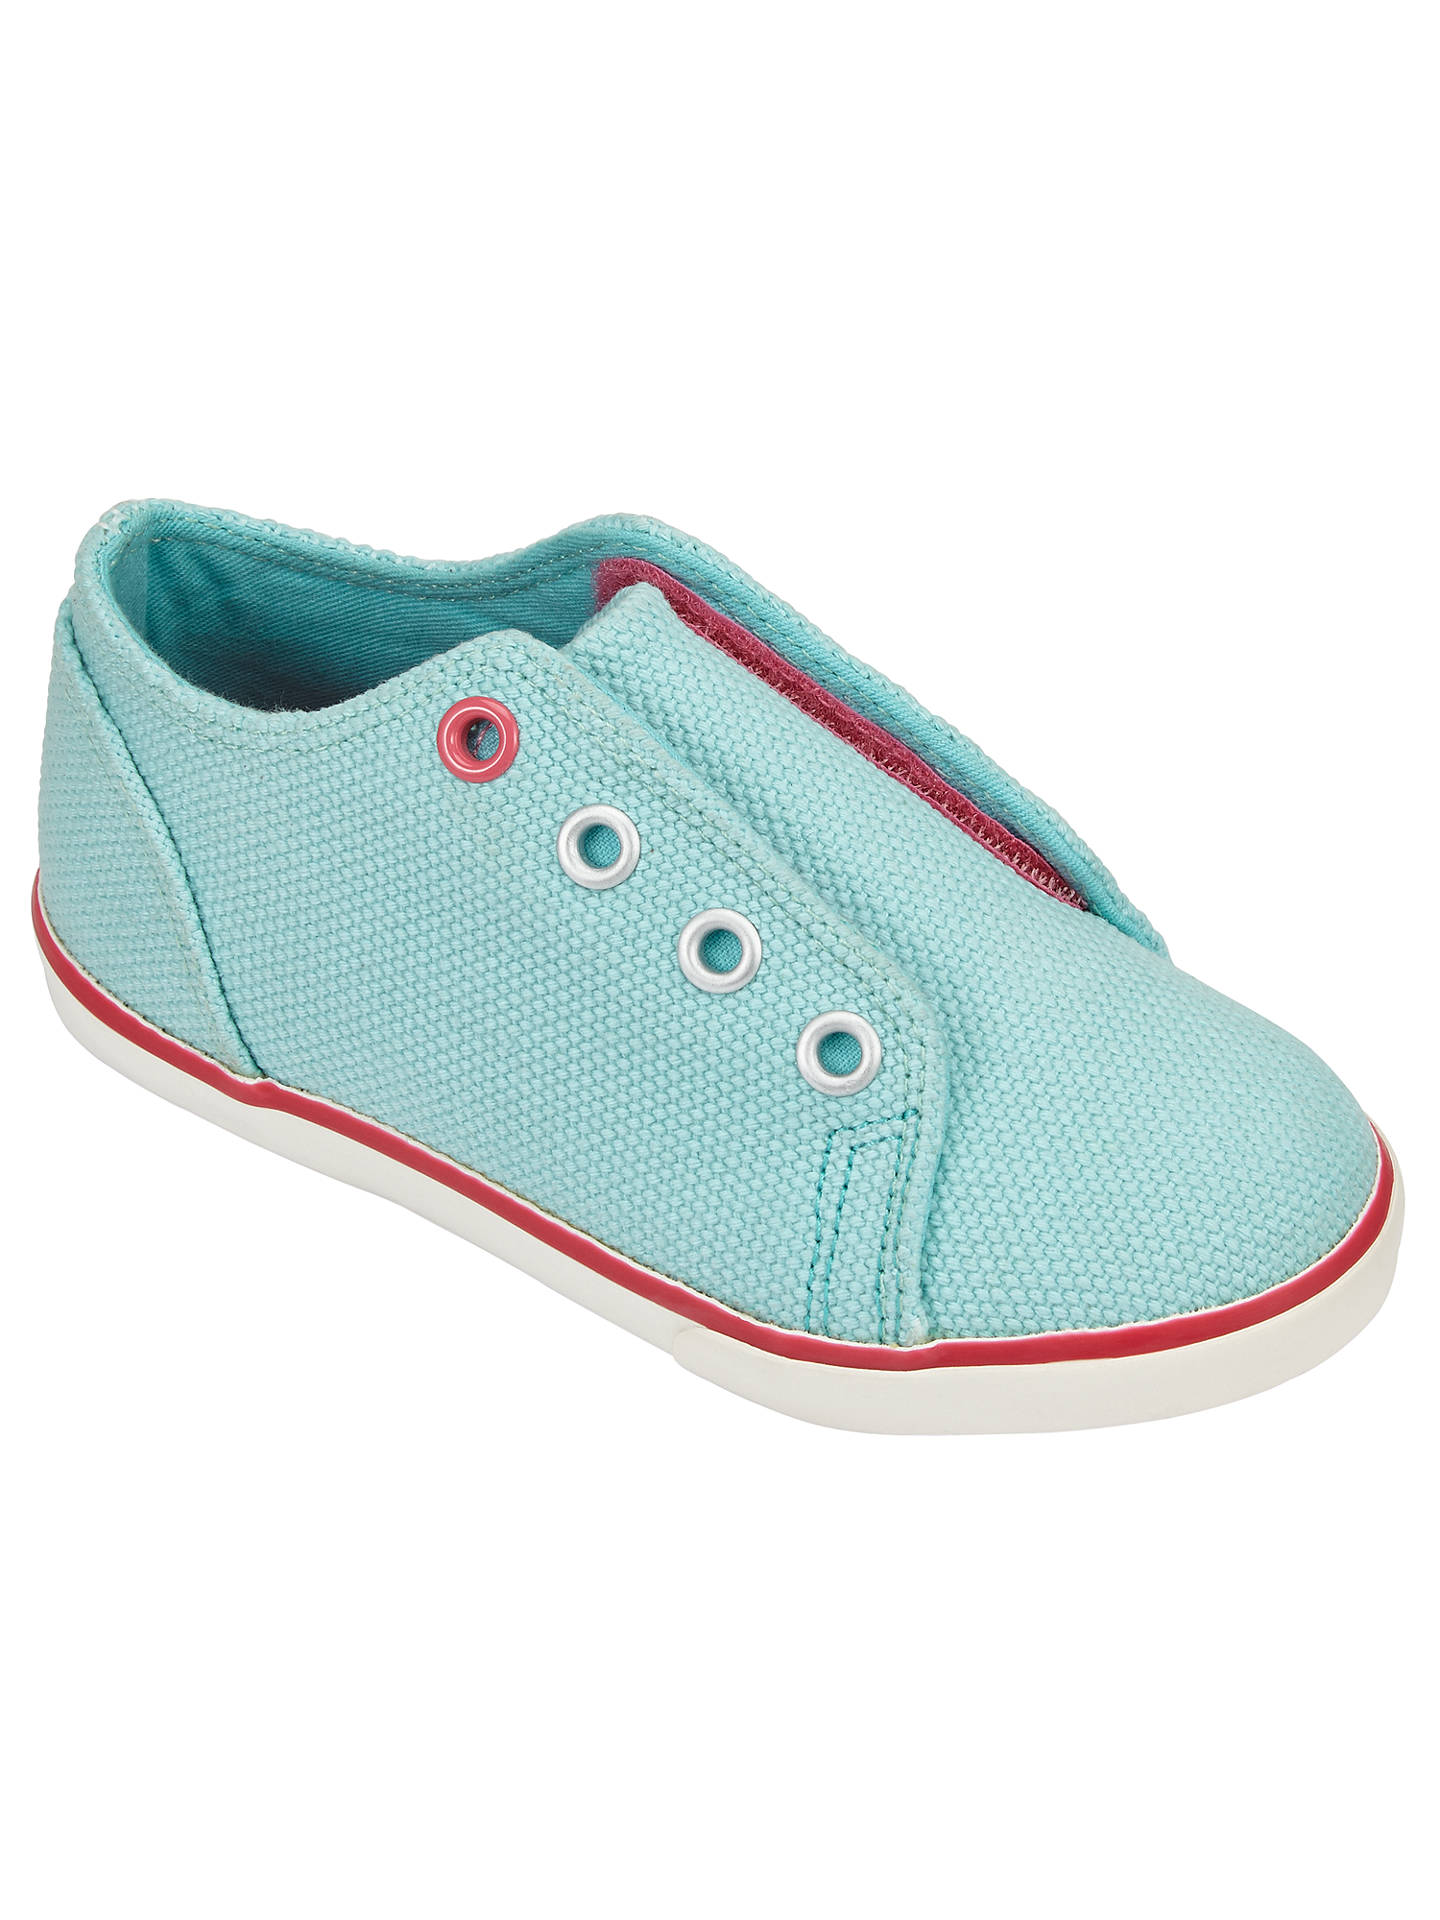 Buy John Lewis Children's Coco Double Rip-Tape Trainers, Turquoise, 6 Jnr Online at johnlewis.com